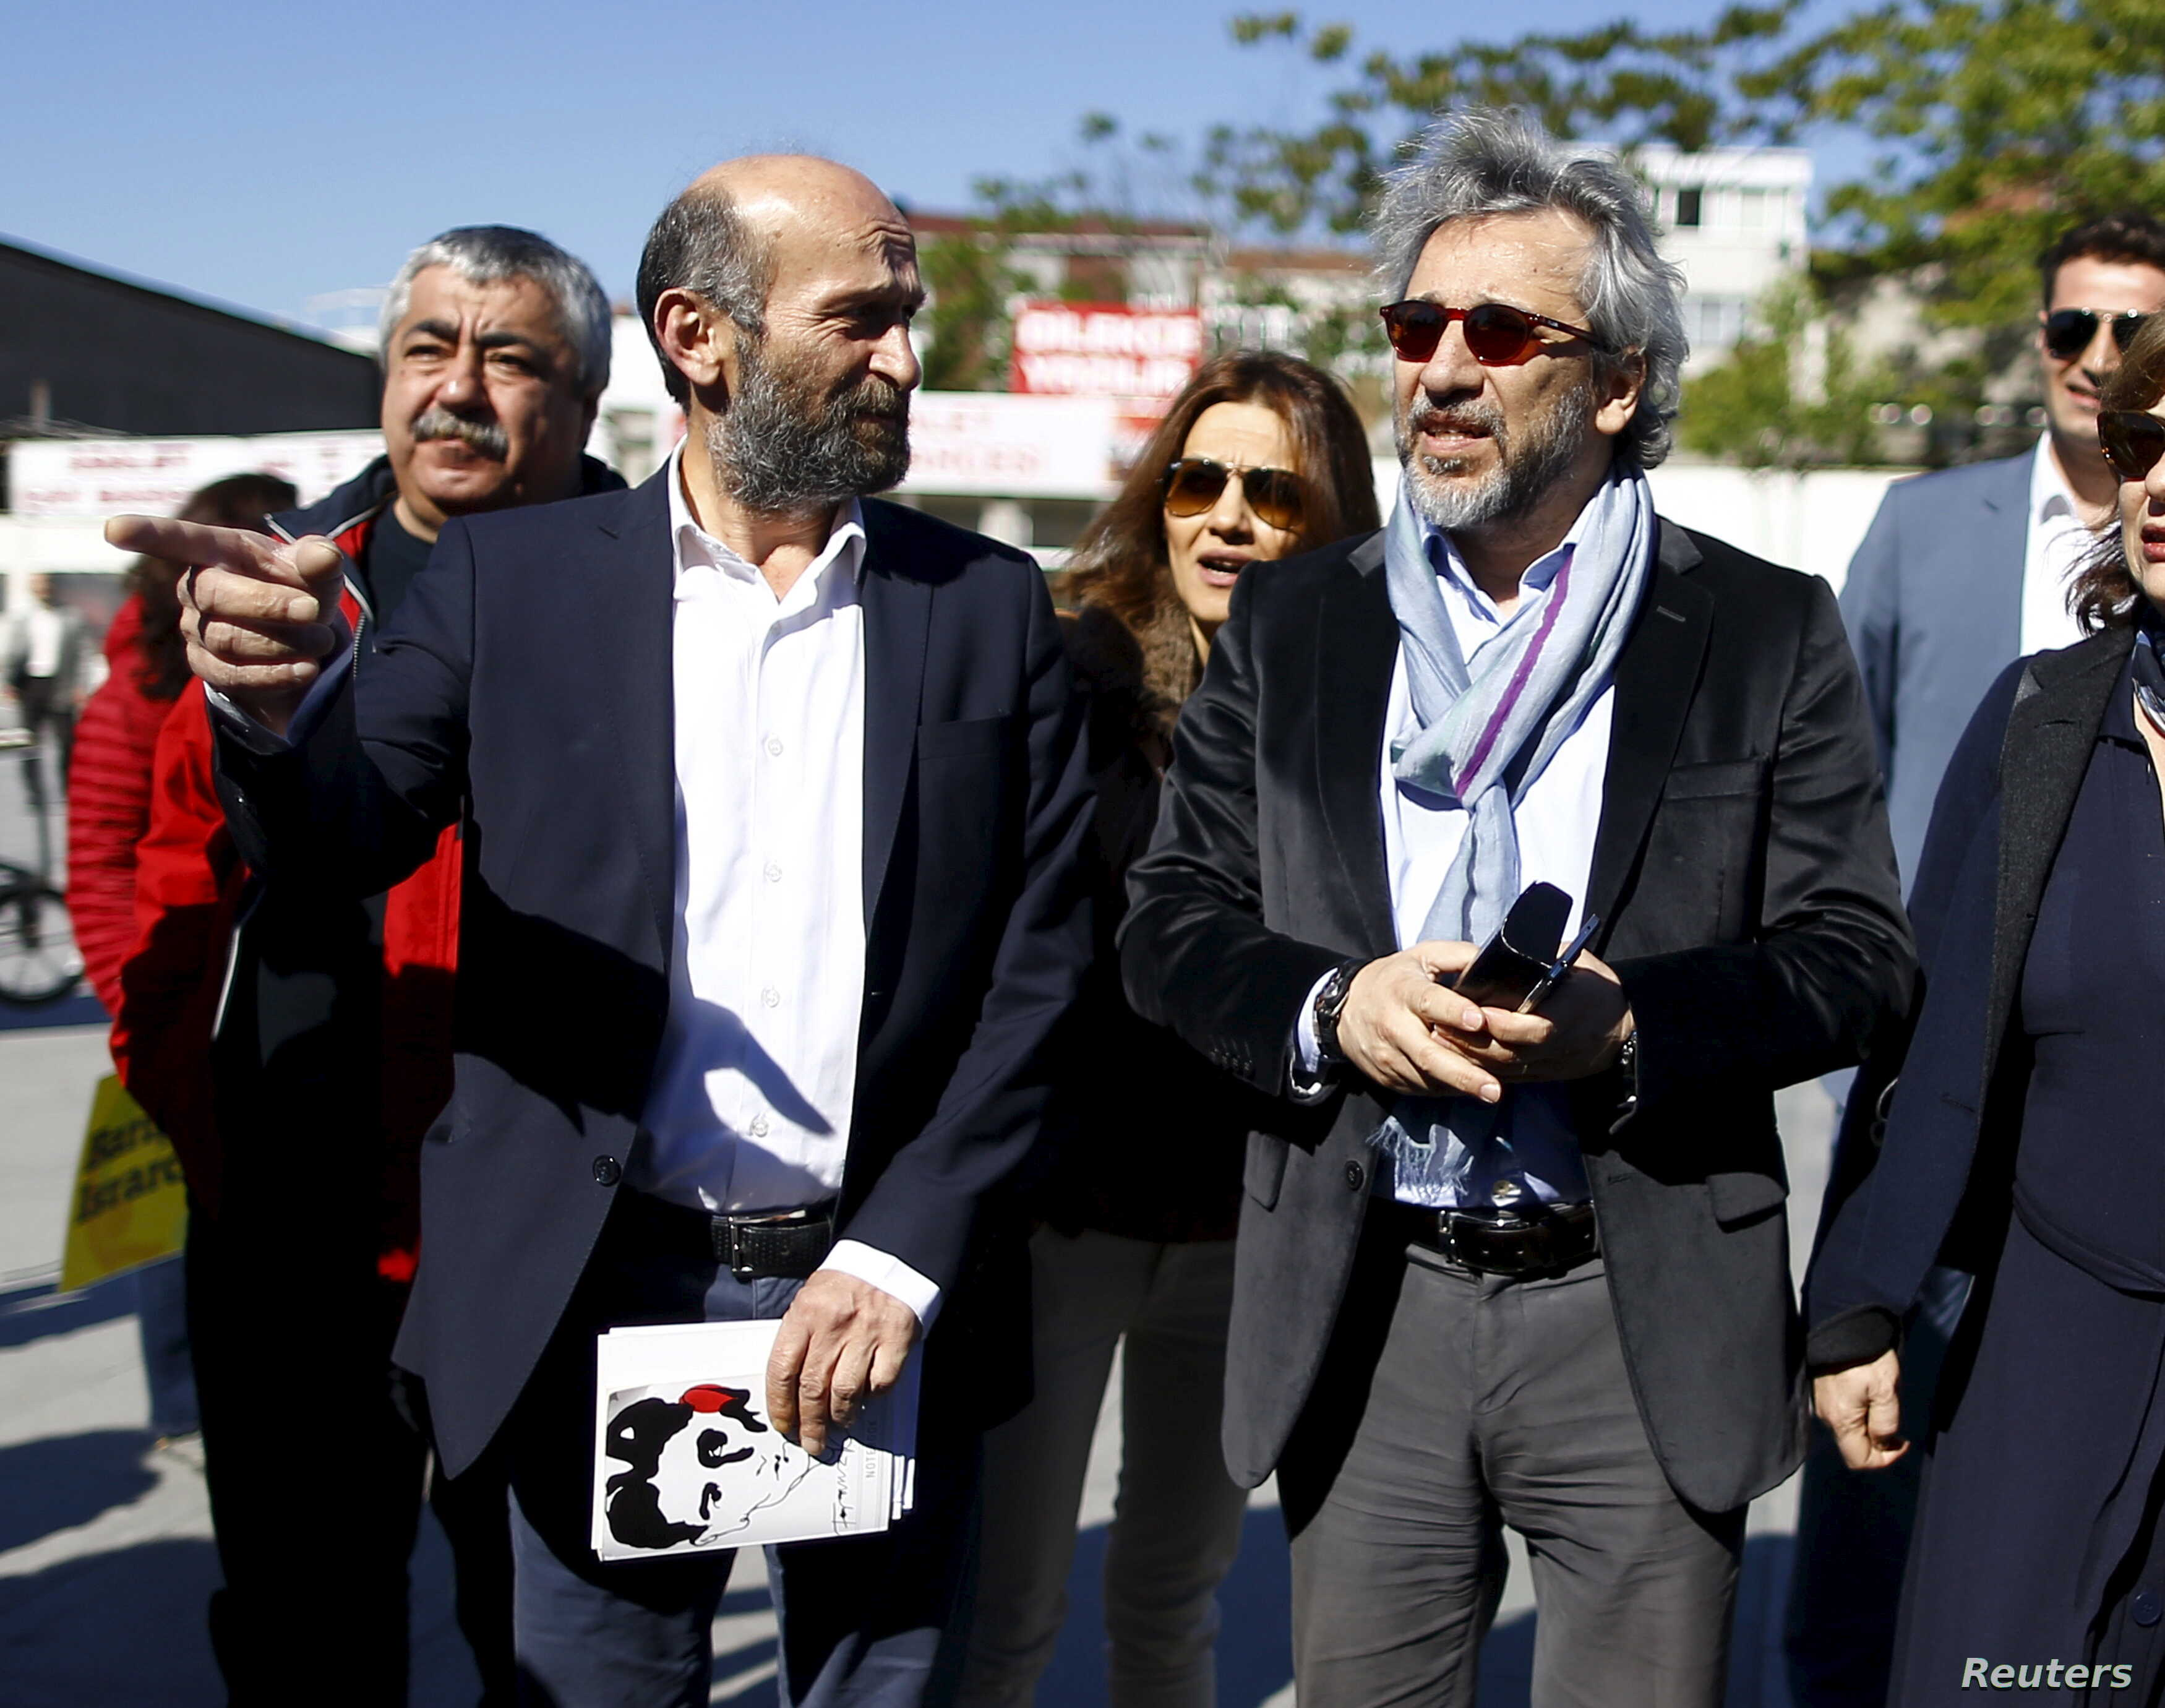 Can Dundar (R), editor-in-chief of Cumhuriyet, accompanied by his Ankara bureau chief Erdem Gul arrive at the Justice Palace in Istanbul, Turkey, April 22, 2016.